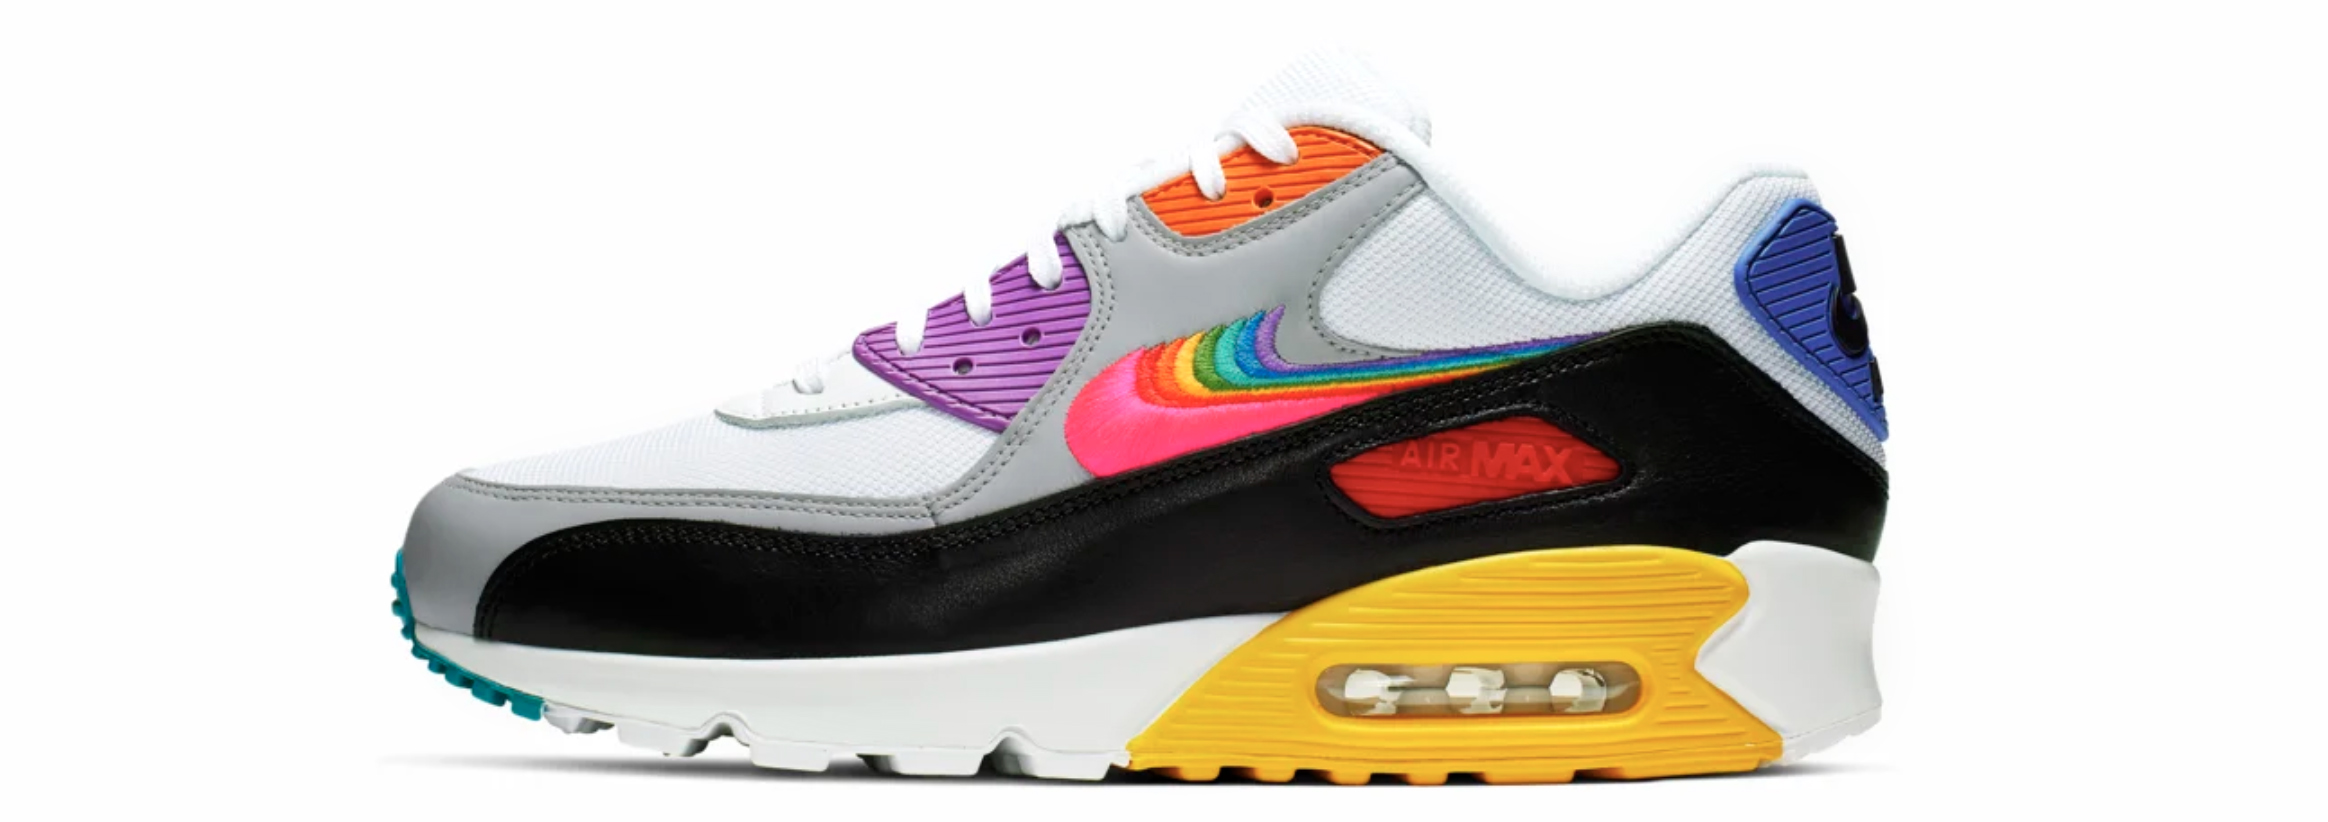 Air Max 90 QS Be True